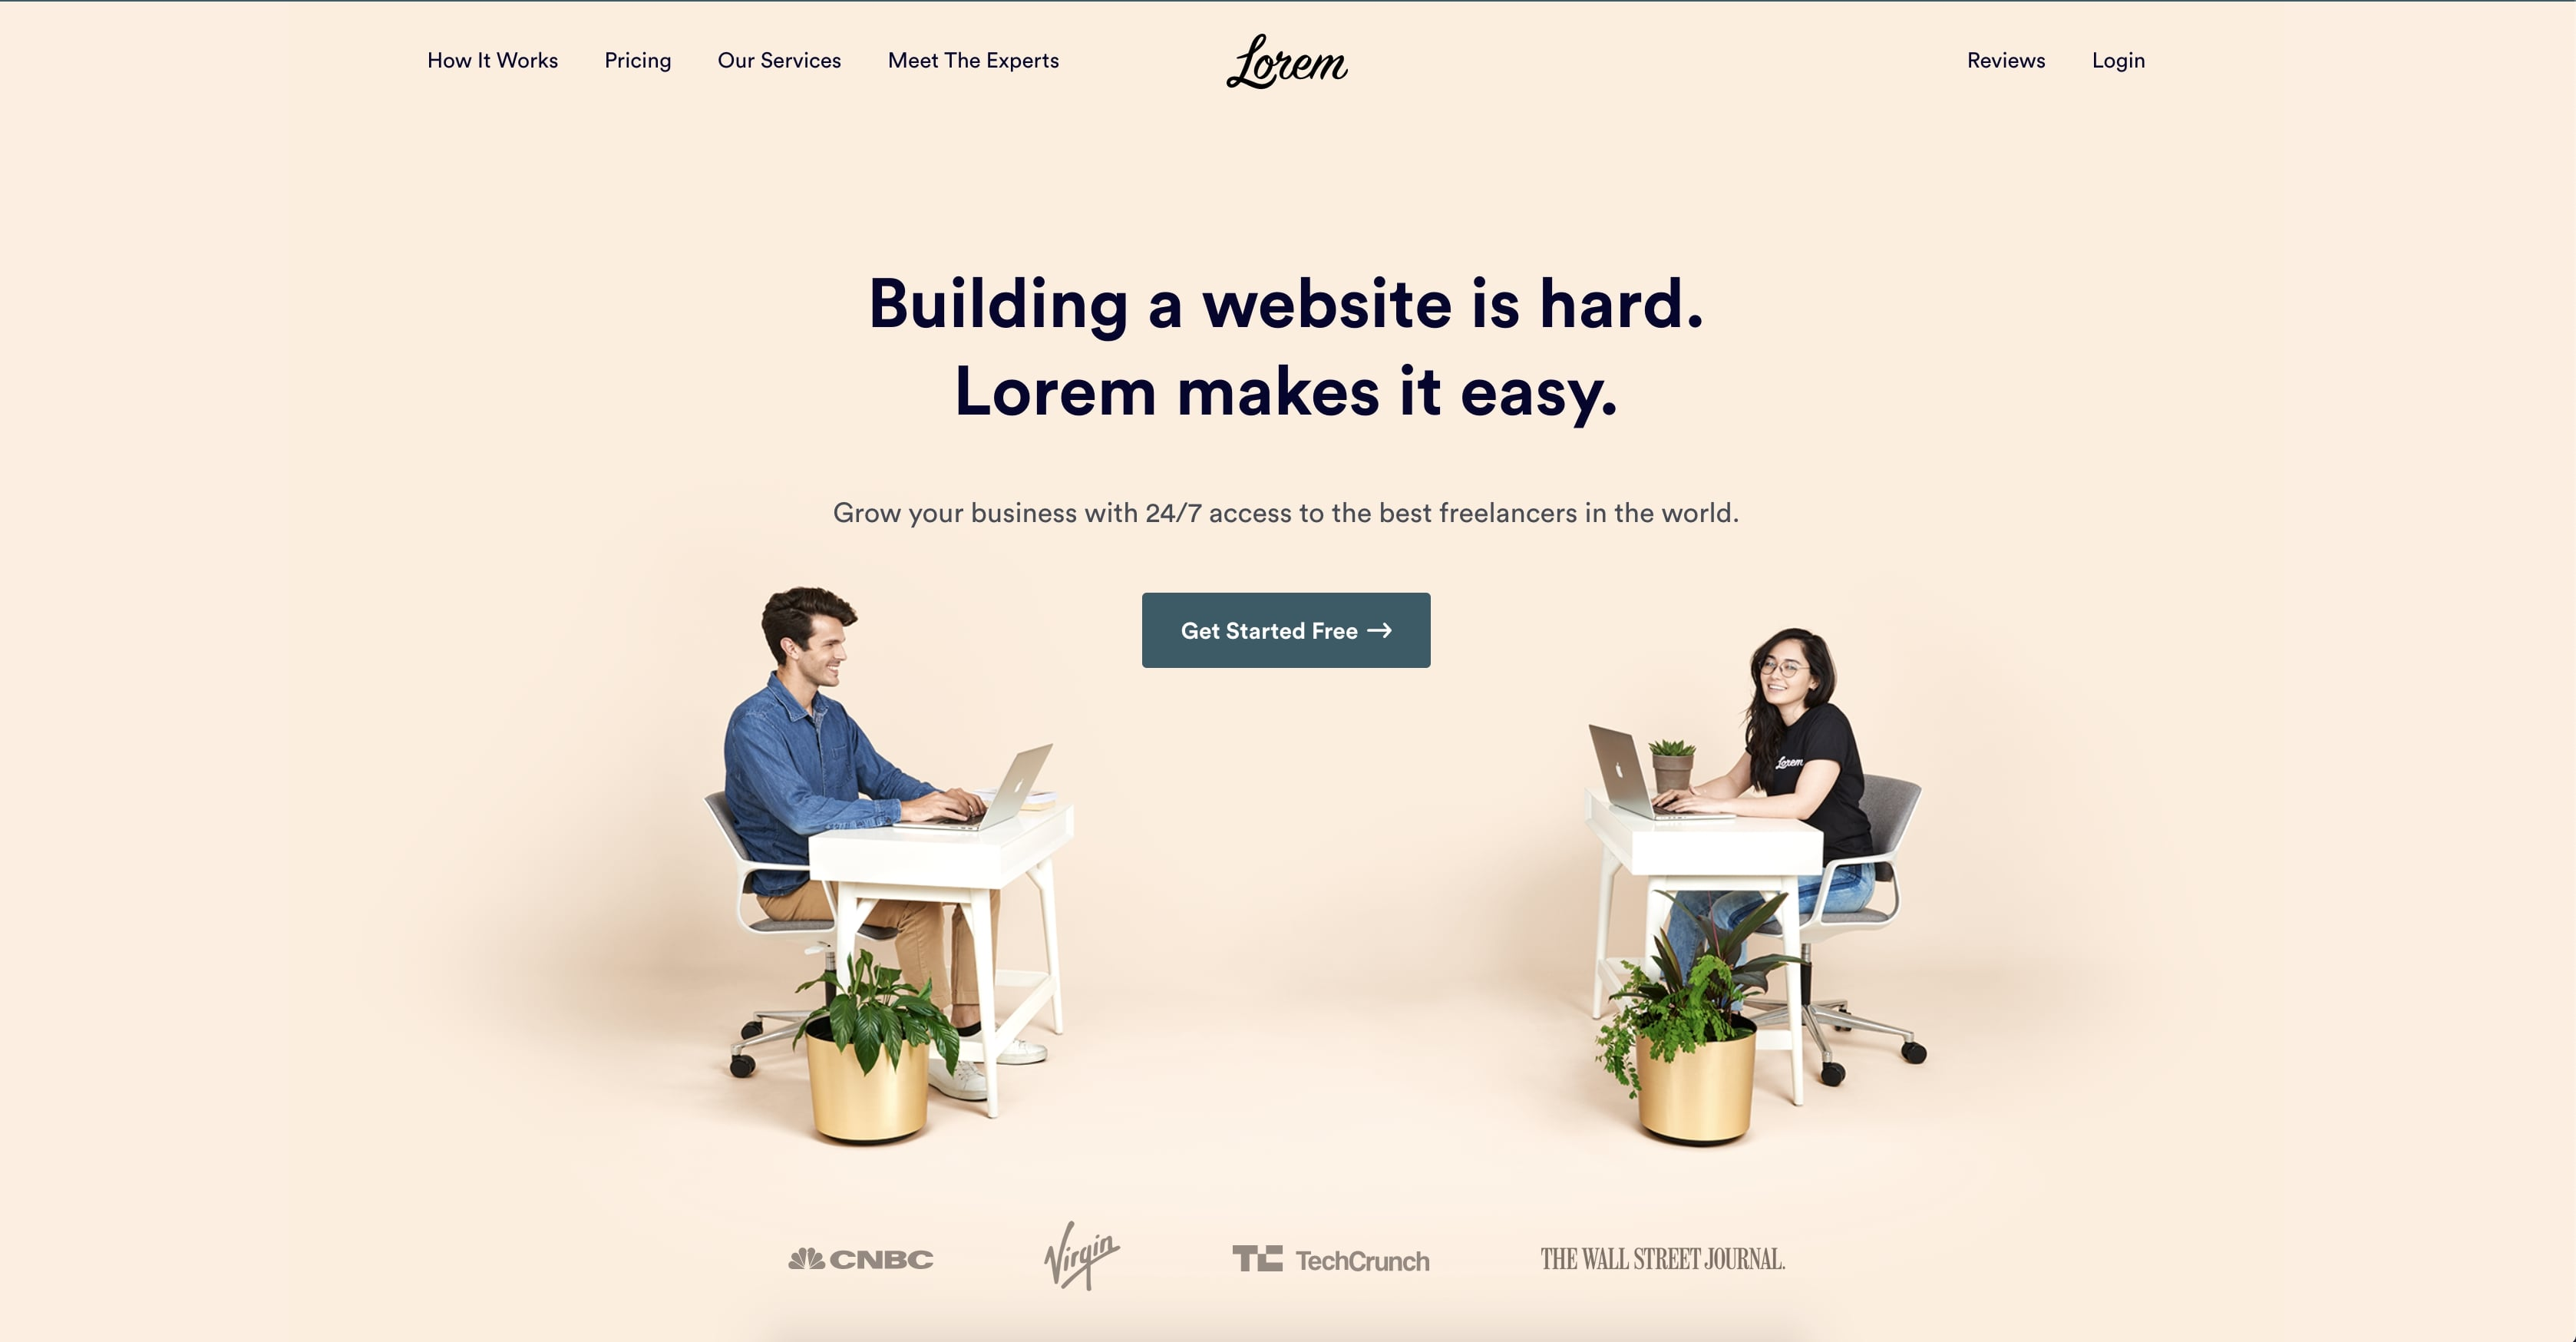 lorem's website